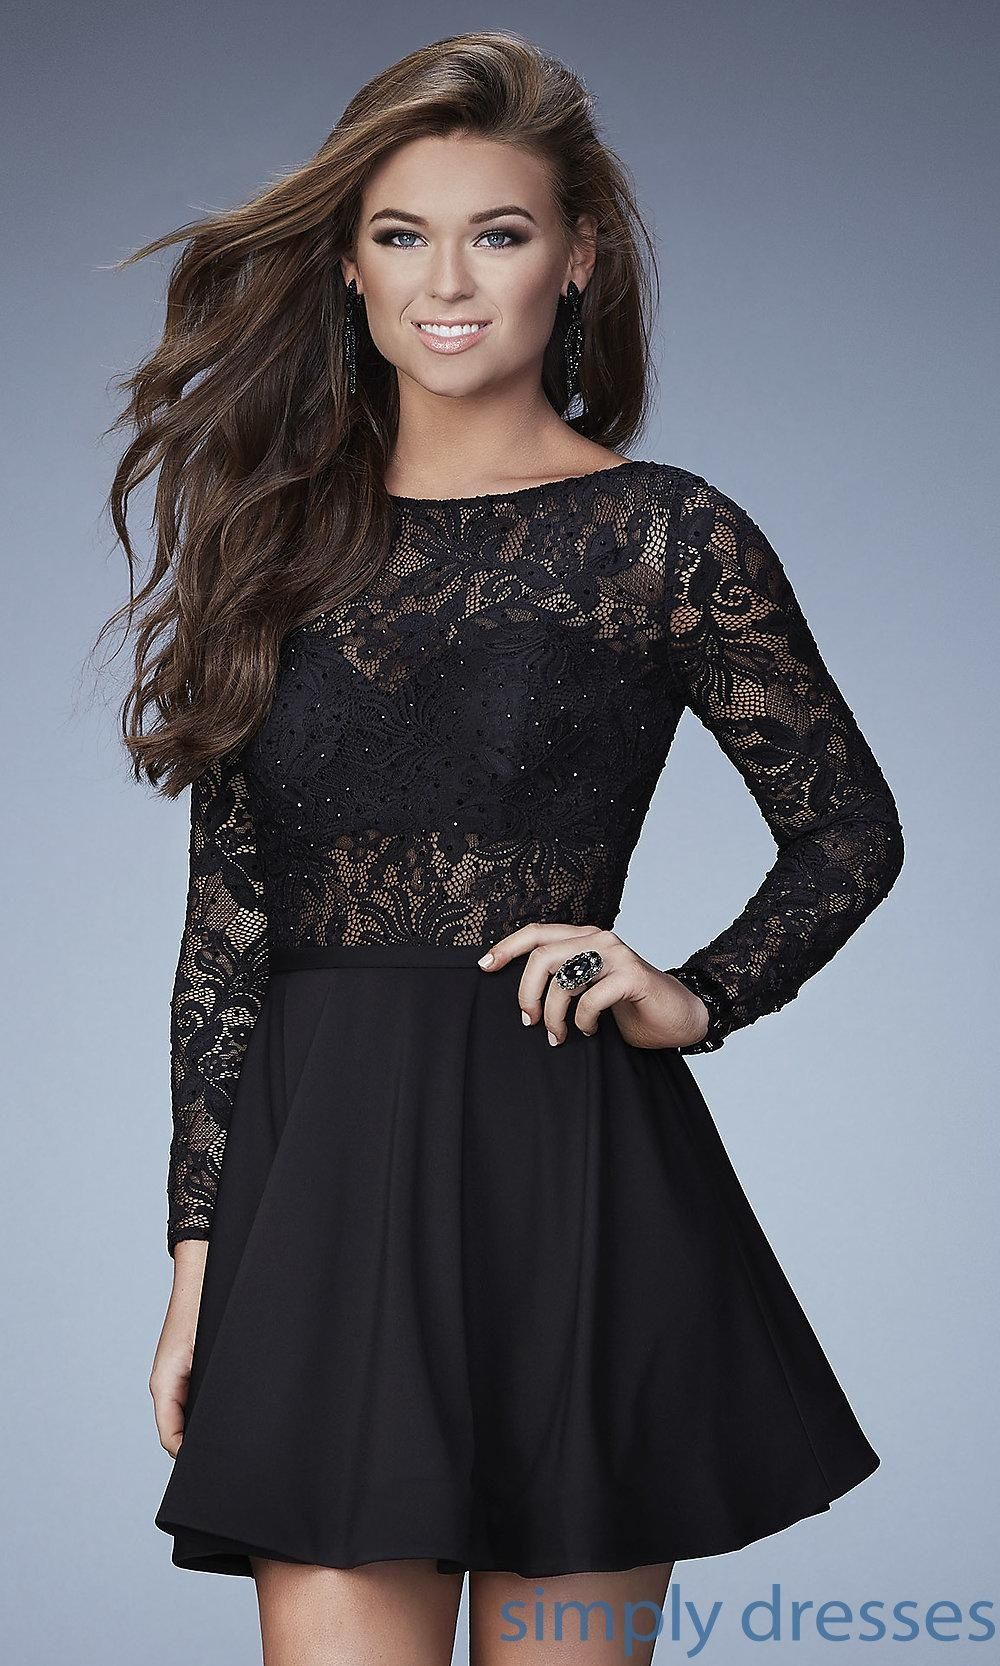 Lace dress gray  Lace Bodice Long Sleeve Short Dress  Brought to you by Avarsha